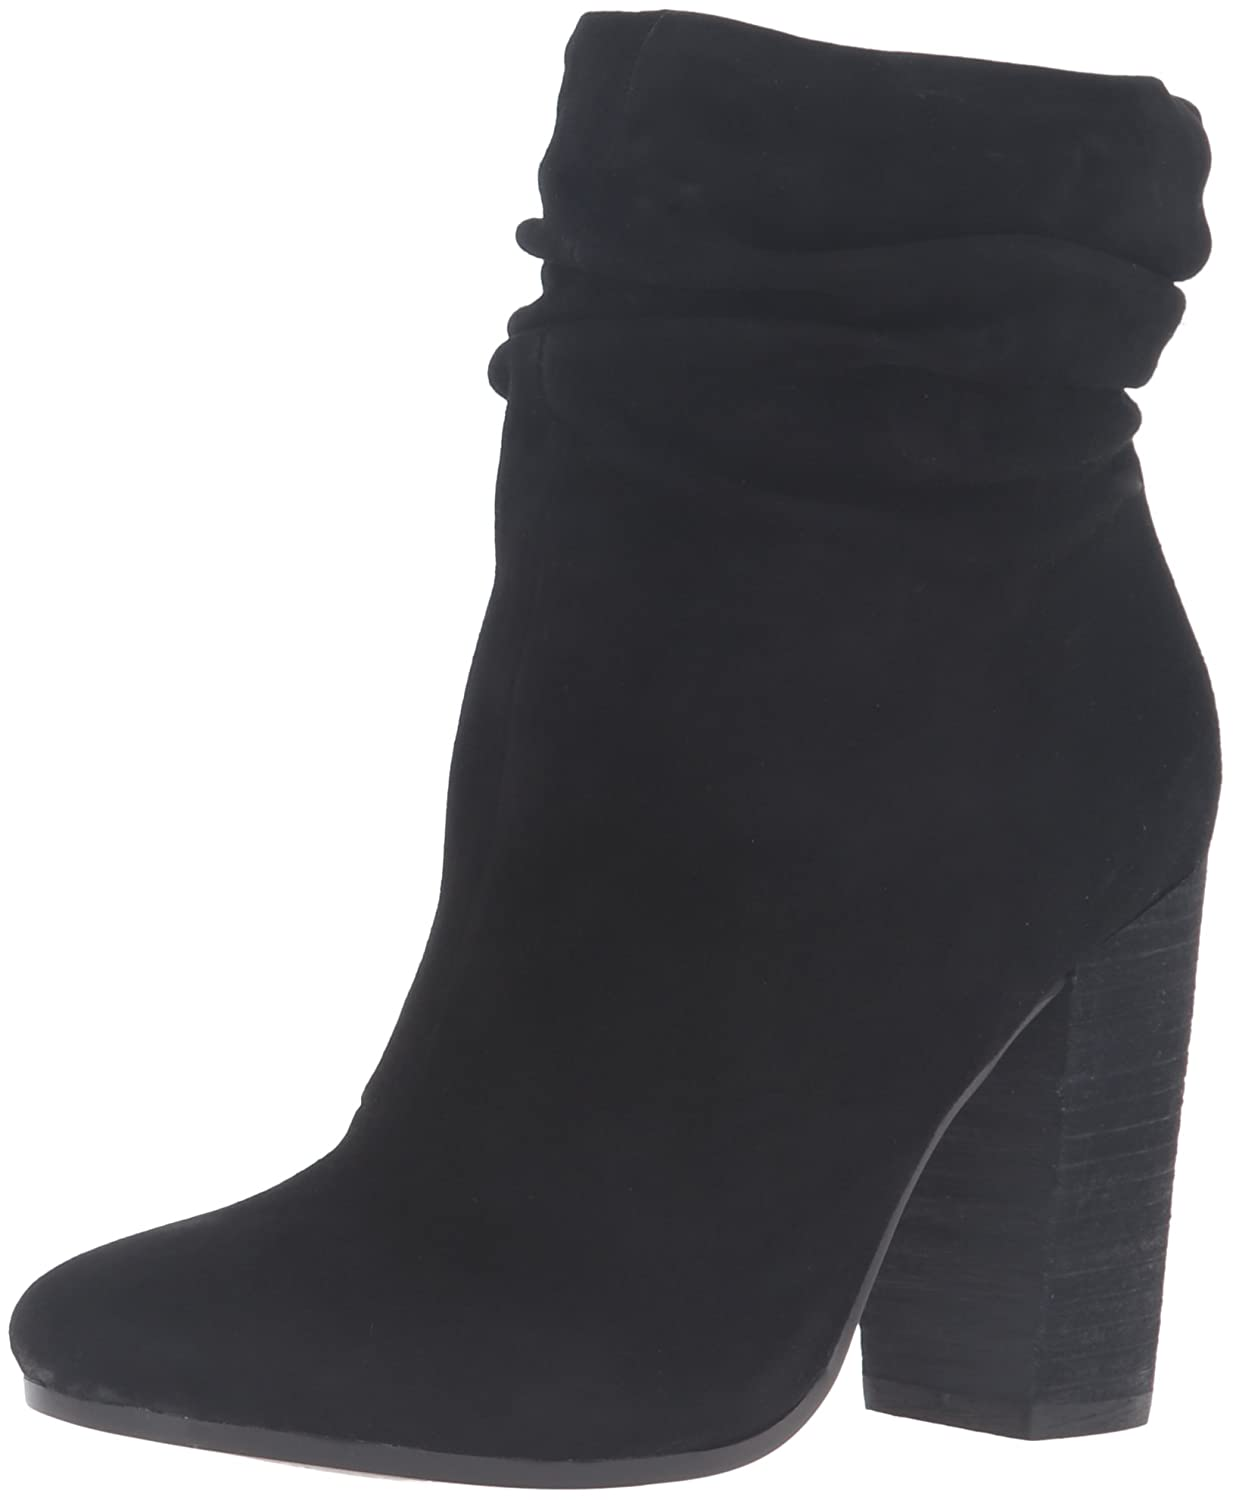 Chinese Laundry Kristin Cavallari Women's Georgie Slouch Boot B01CR98TXQ 10 B(M) US|Black Suede